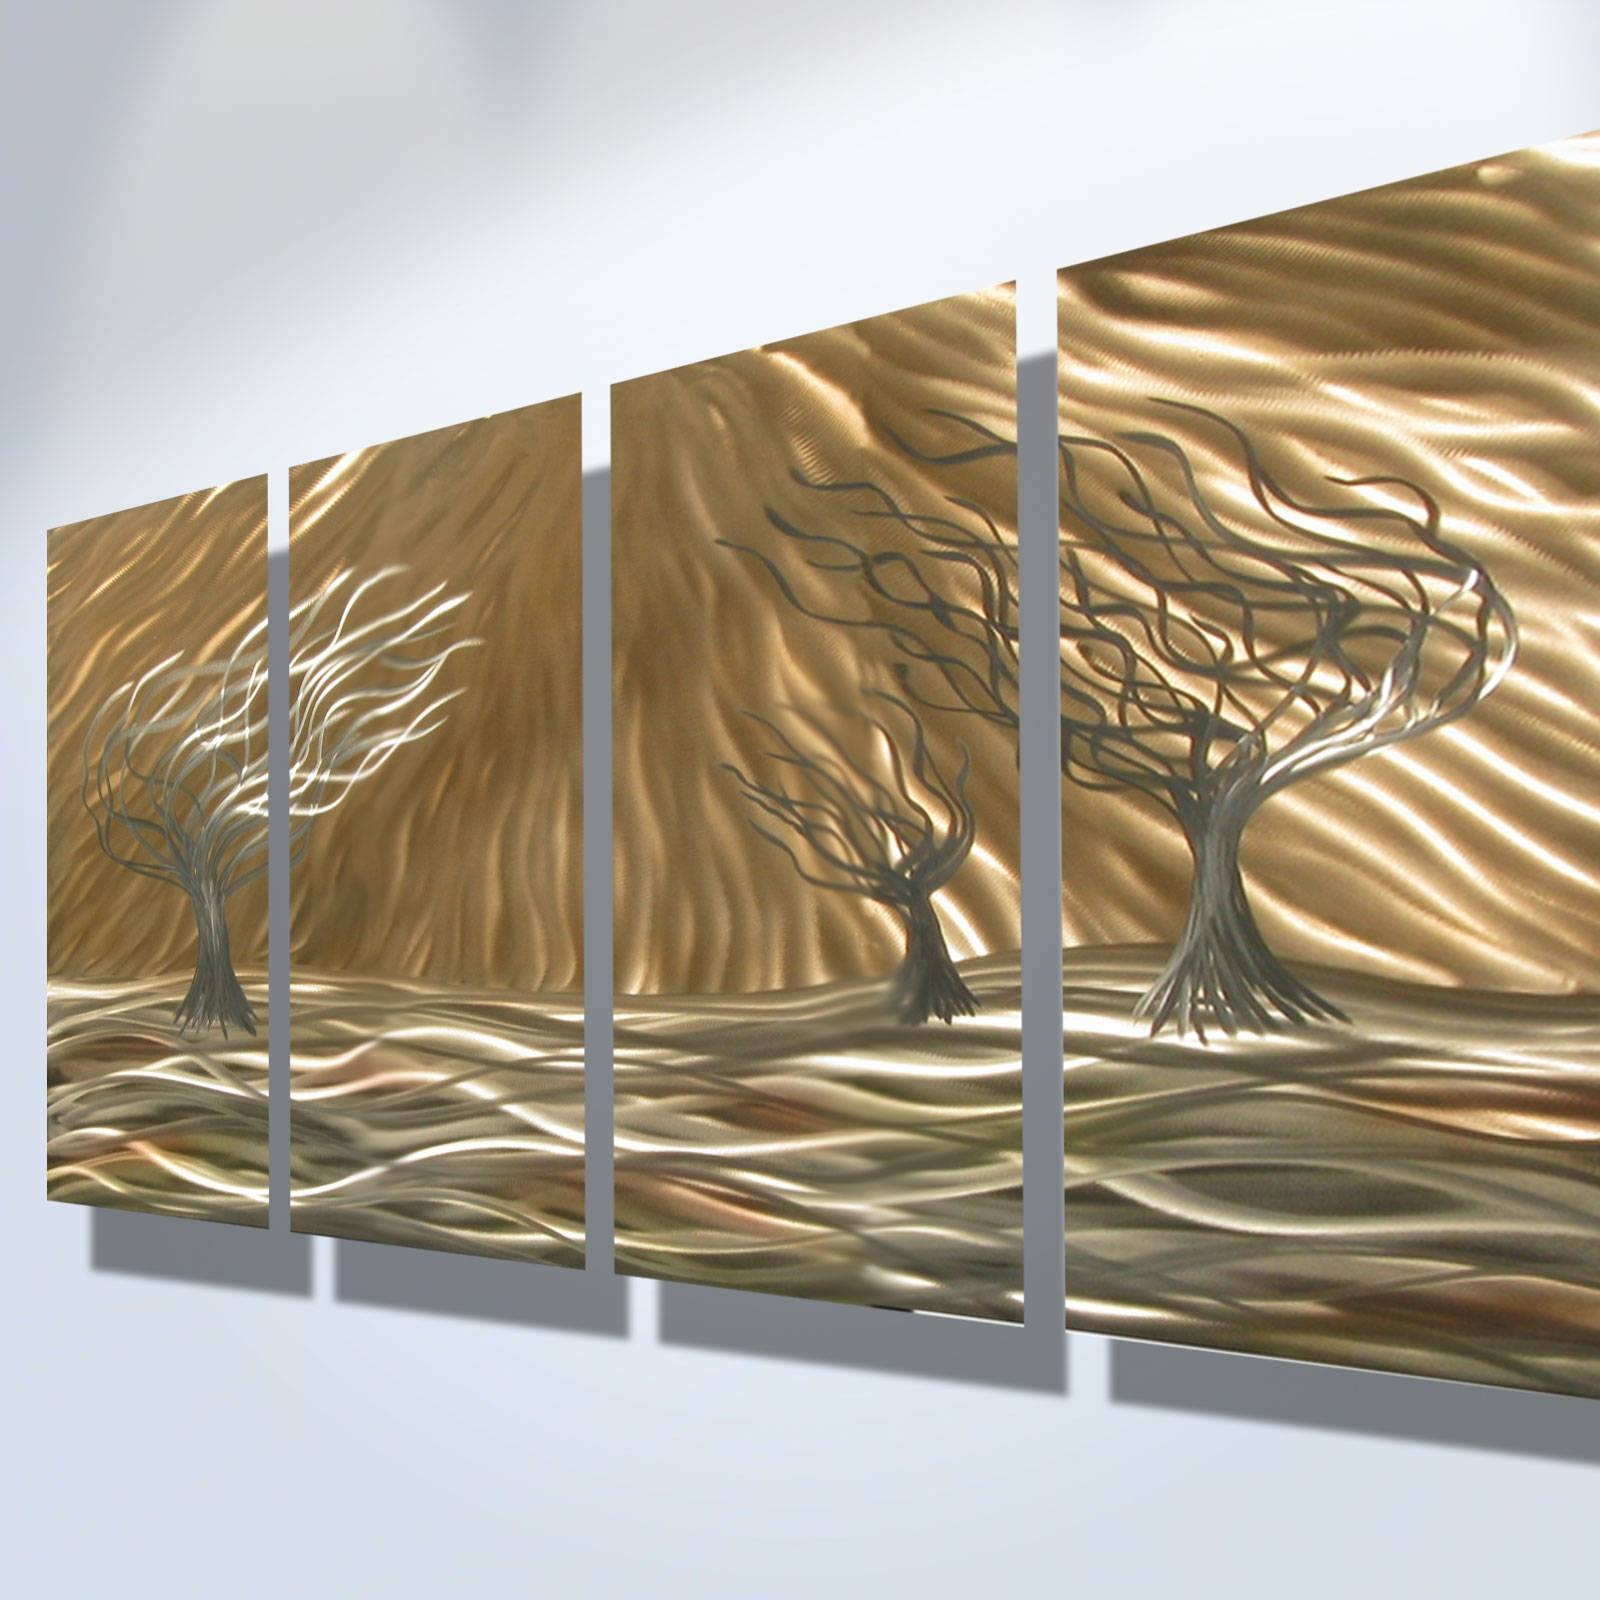 3 Trees 4 Panel – Abstract Metal Wall Art Contemporary Modern Inside Current Metal Wall Art (View 24 of 30)